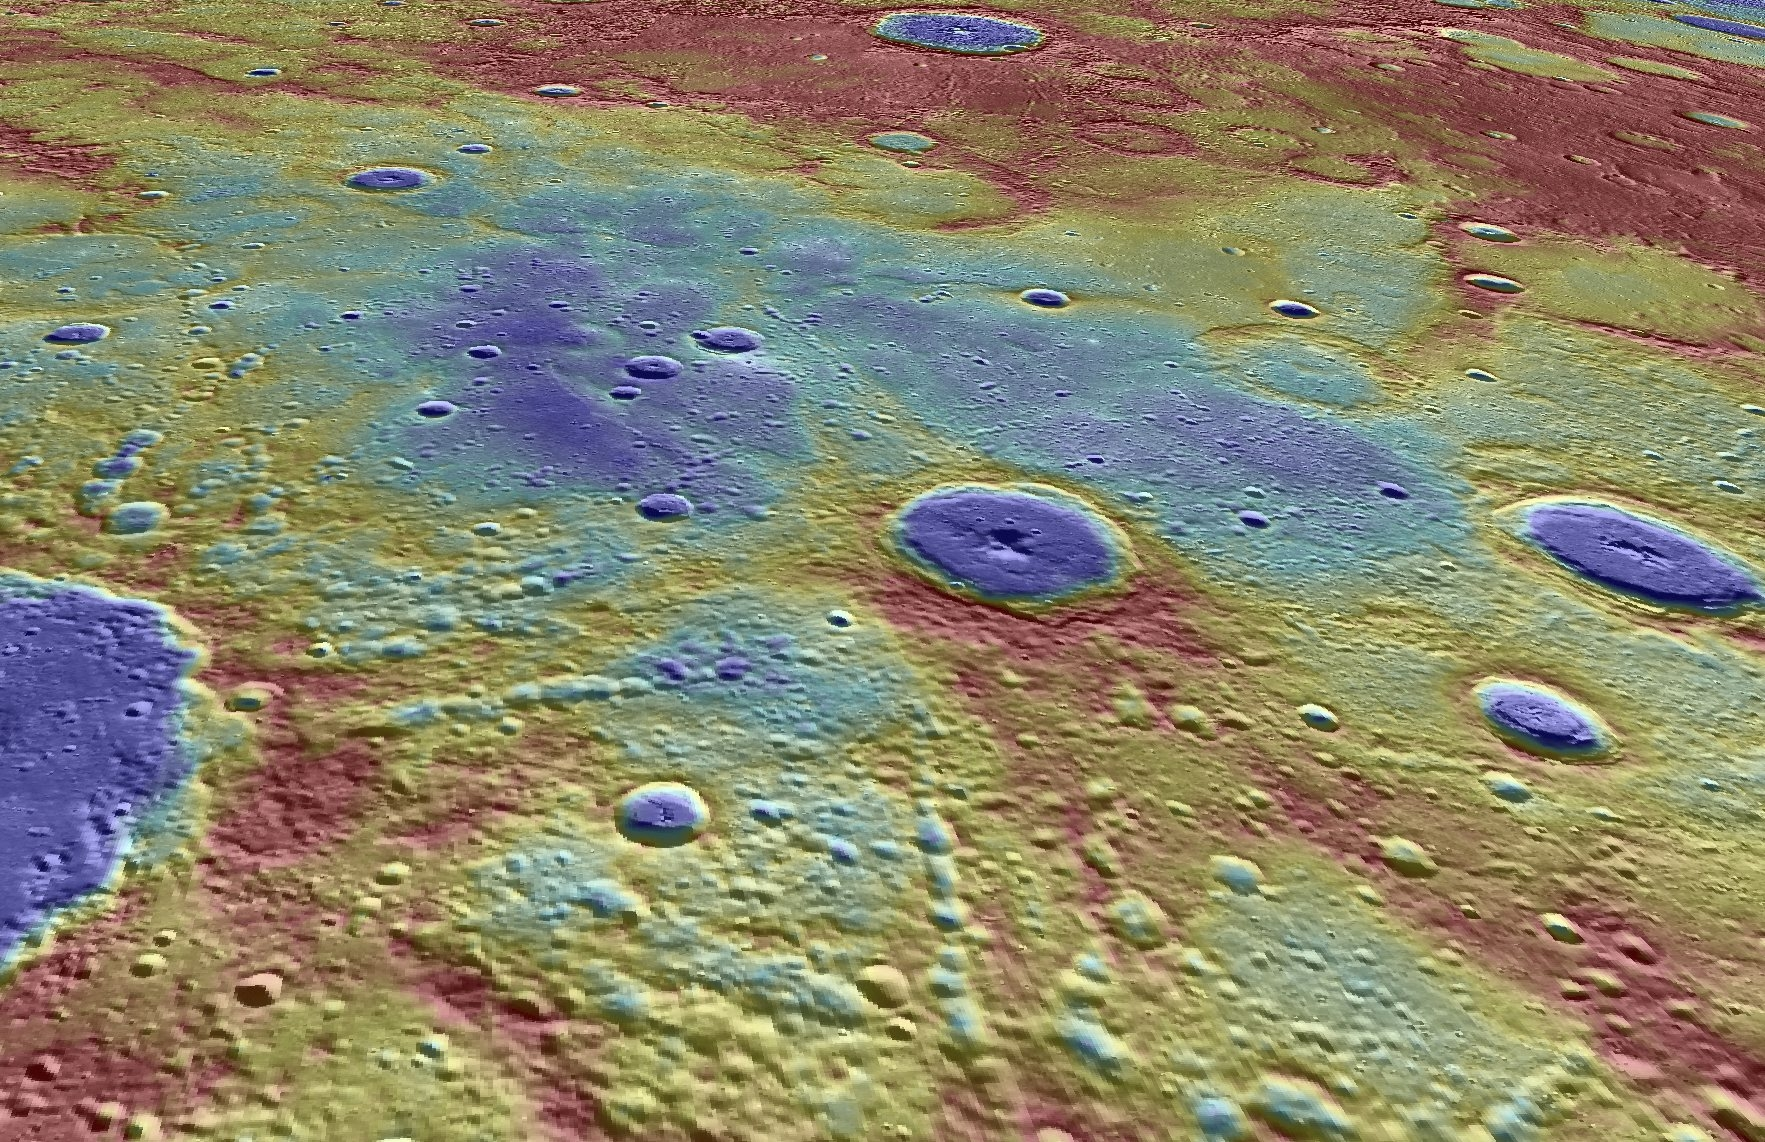 This image of Mercury was created using elevation and imaging data gathered by the Messenger spacecraft before it crashed on April 30.